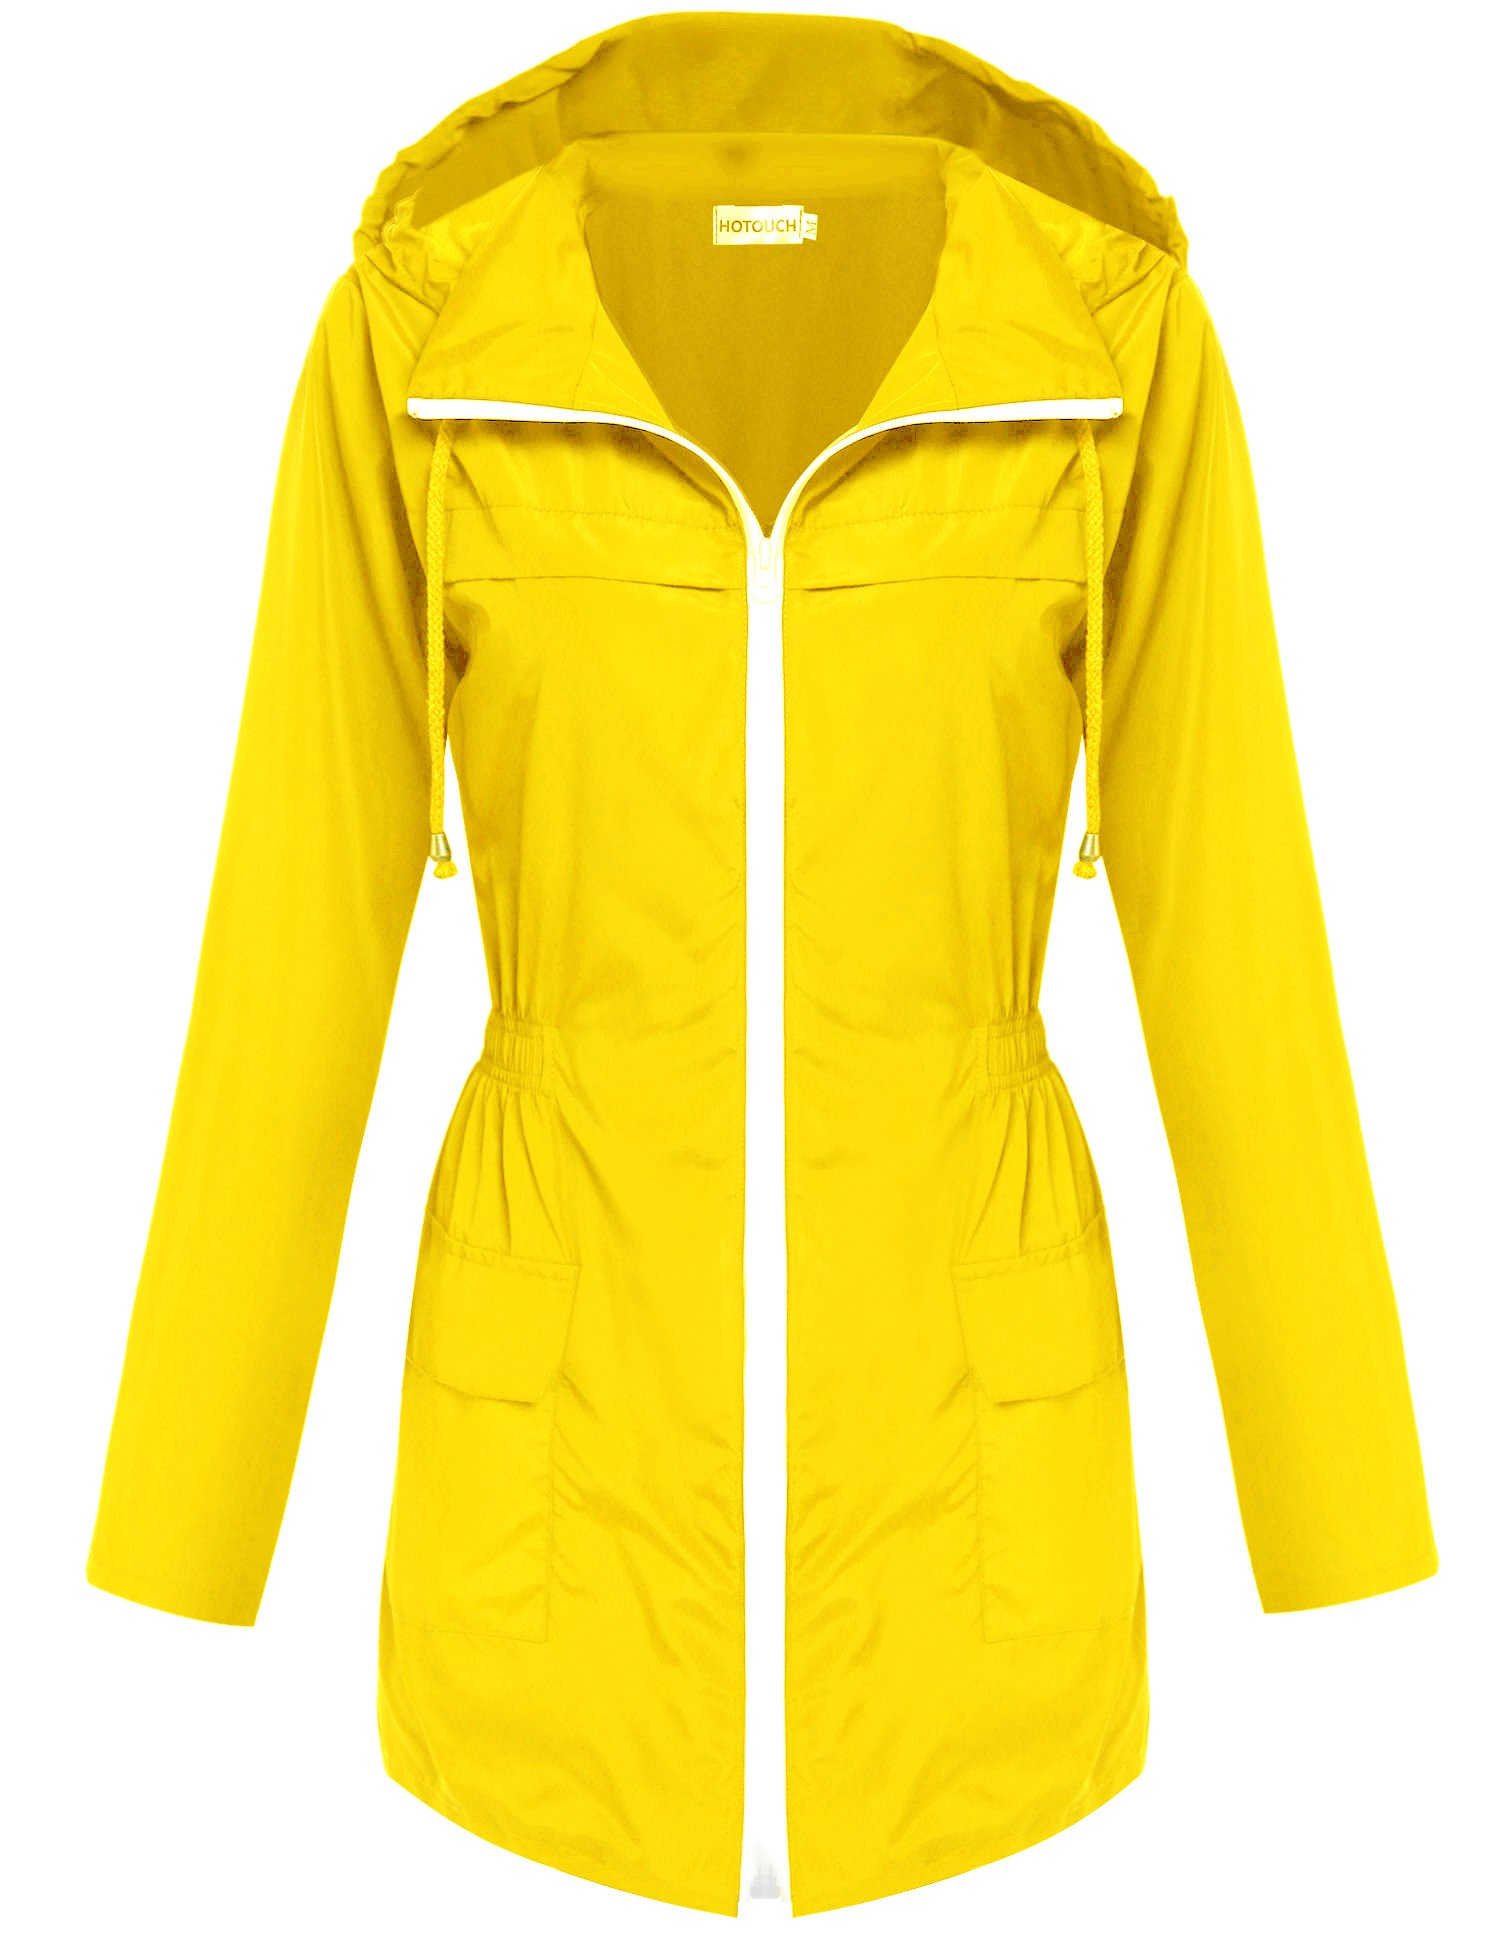 Hotouch Womens' Waterproof Lightweight Raincoat Hooded Outdoor Hiking Long Rain Jacket Yellow S by Hotouch (Image #1)